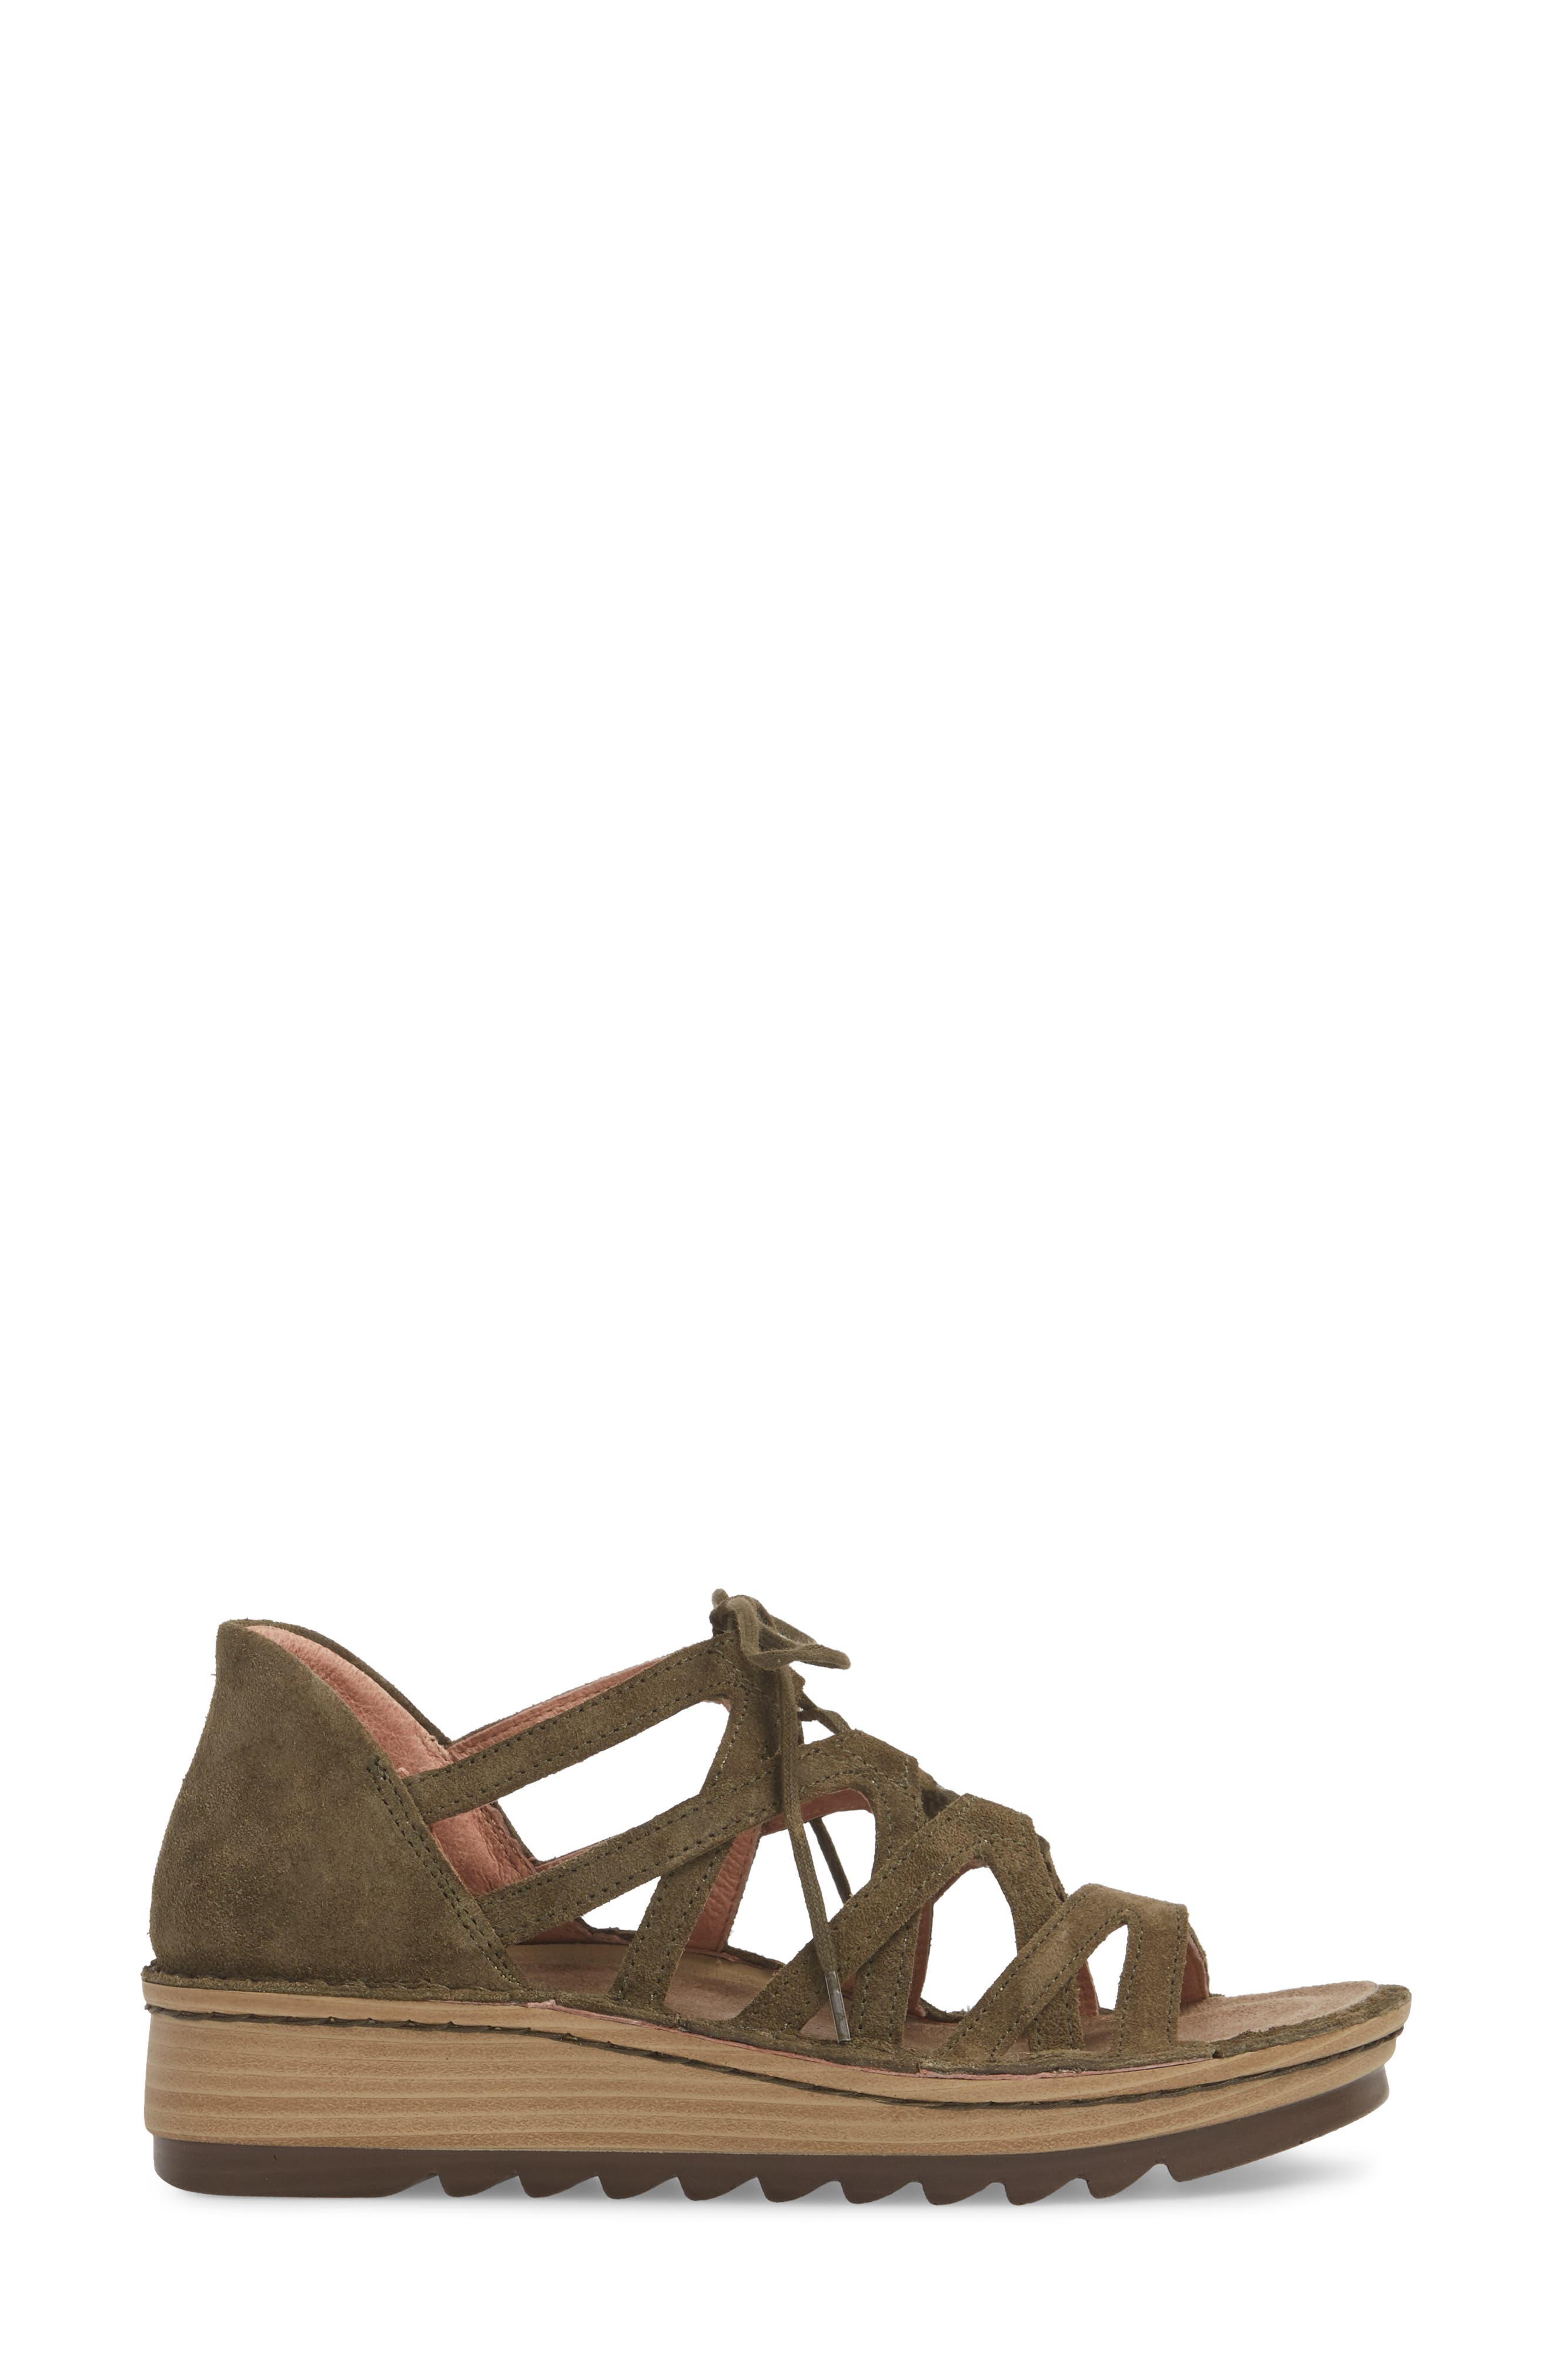 Yarrow Sandal,                             Alternate thumbnail 3, color,                             Oily Olive Suede